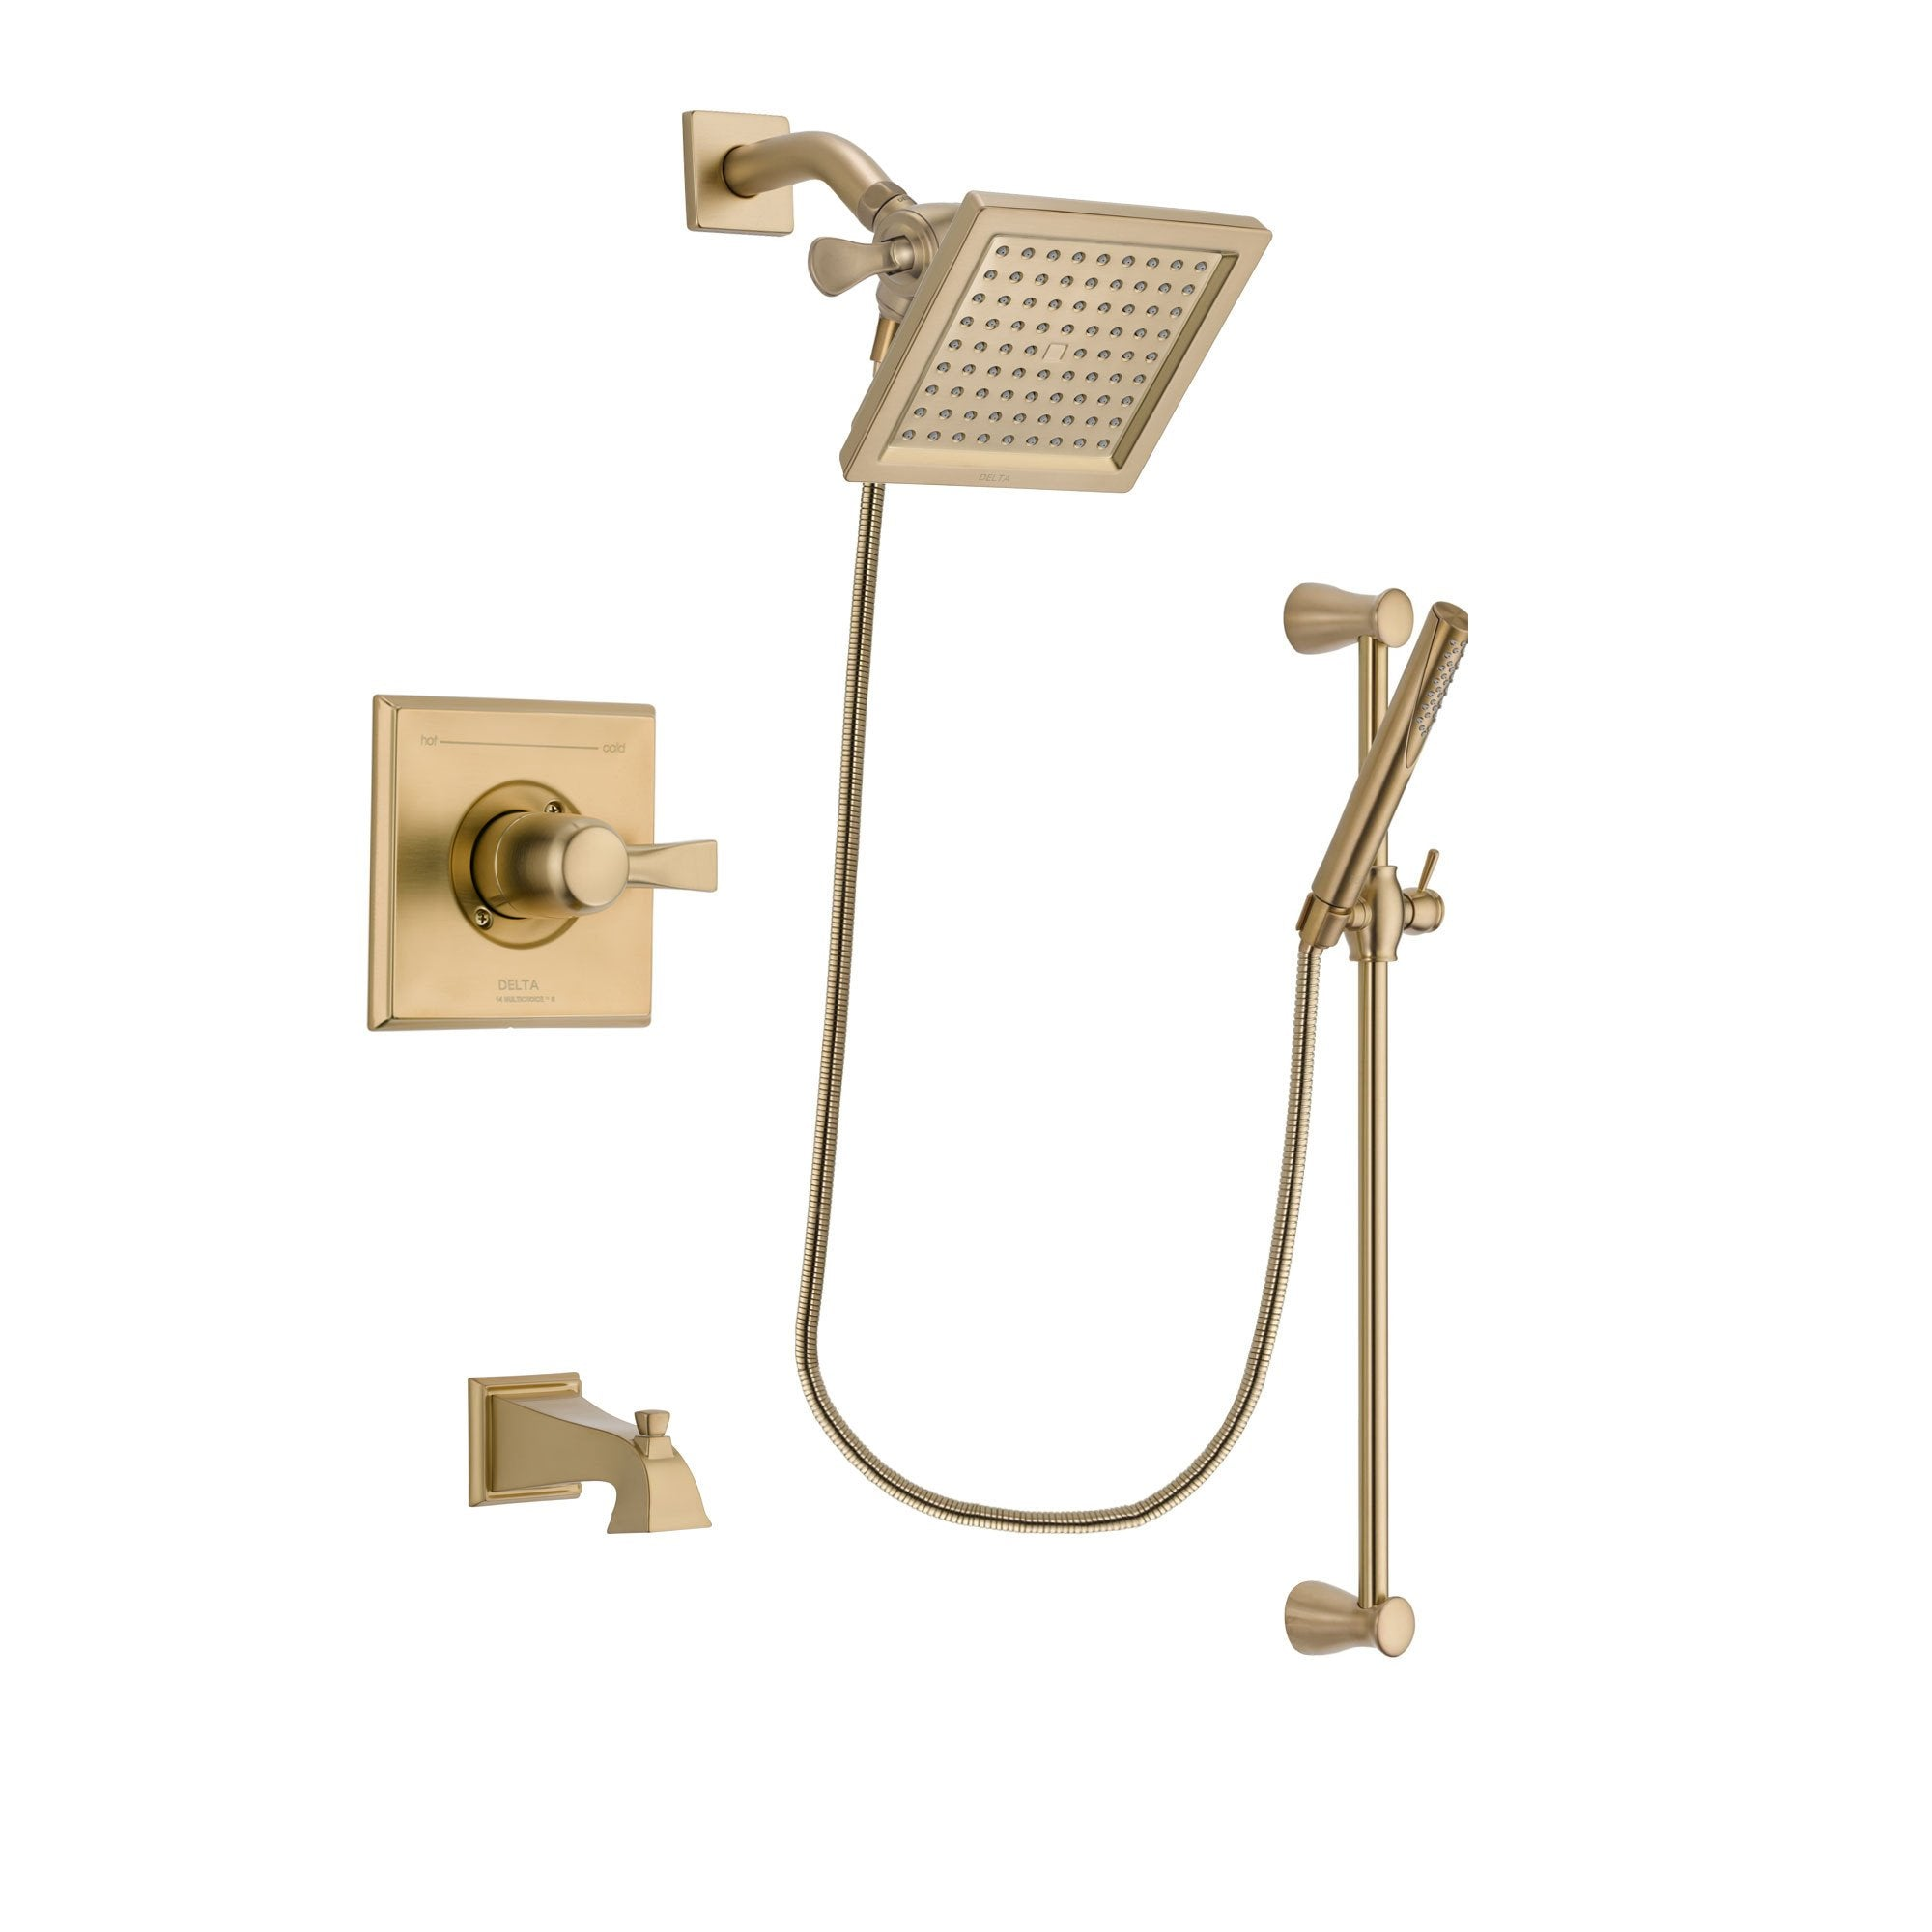 Elegant Delta Dryden Champagne Bronze Finish Tub And Shower Faucet System Package  With 6.5 Inch Square